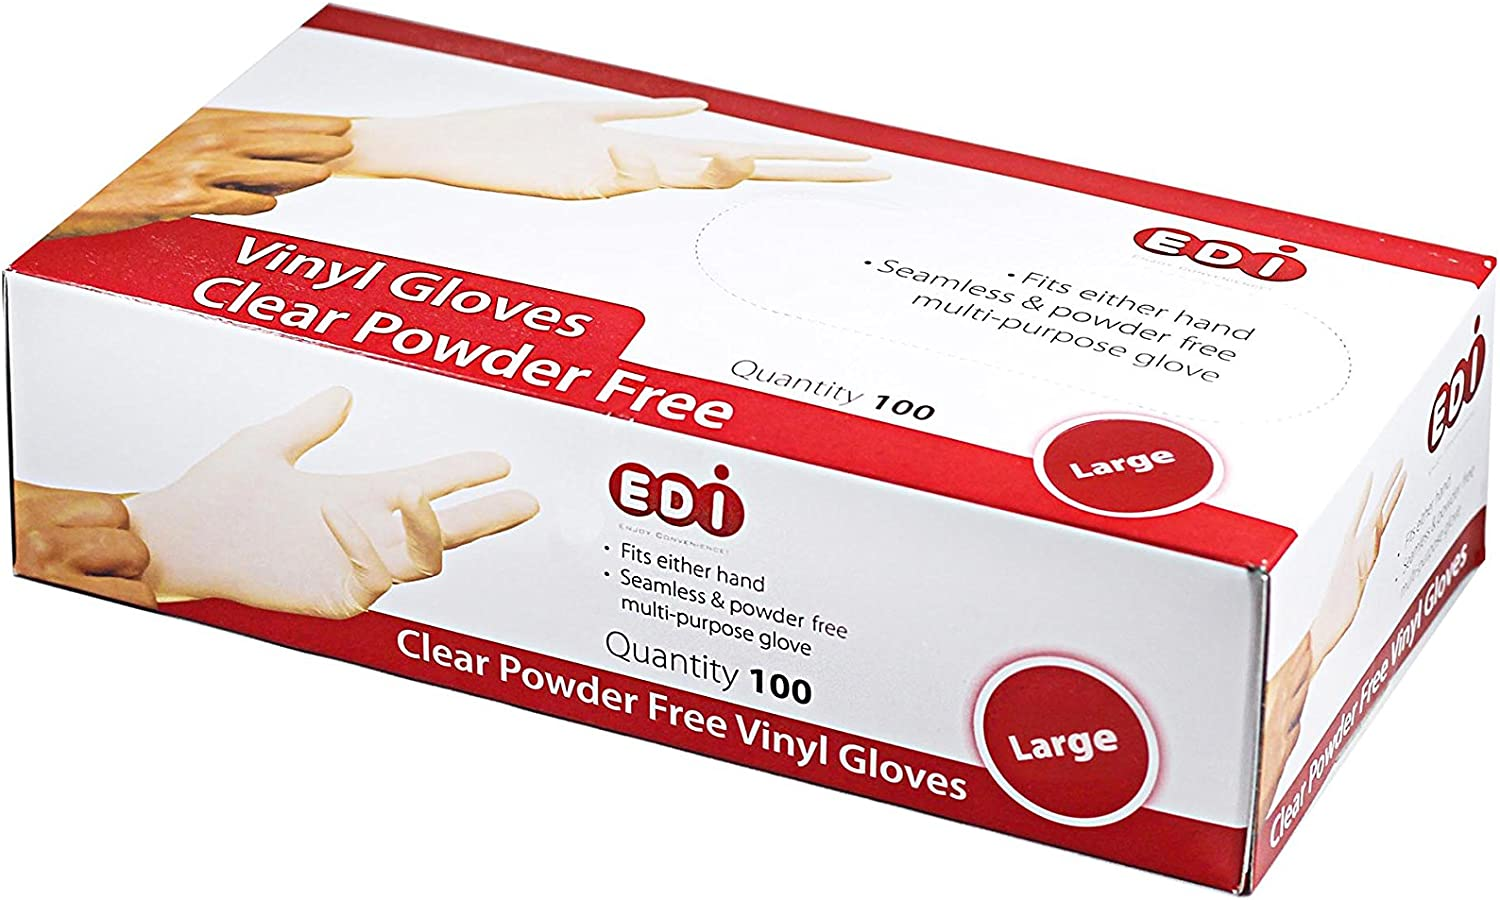 EDI Clear Powder Free Vinyl Glove,4.3 mil,Disposable glove,Industrial Glove,Clear, Latex Free and Allergy Free, Plastic, Work, Food Service, Cleaning,100 gloves per box (1000, large)